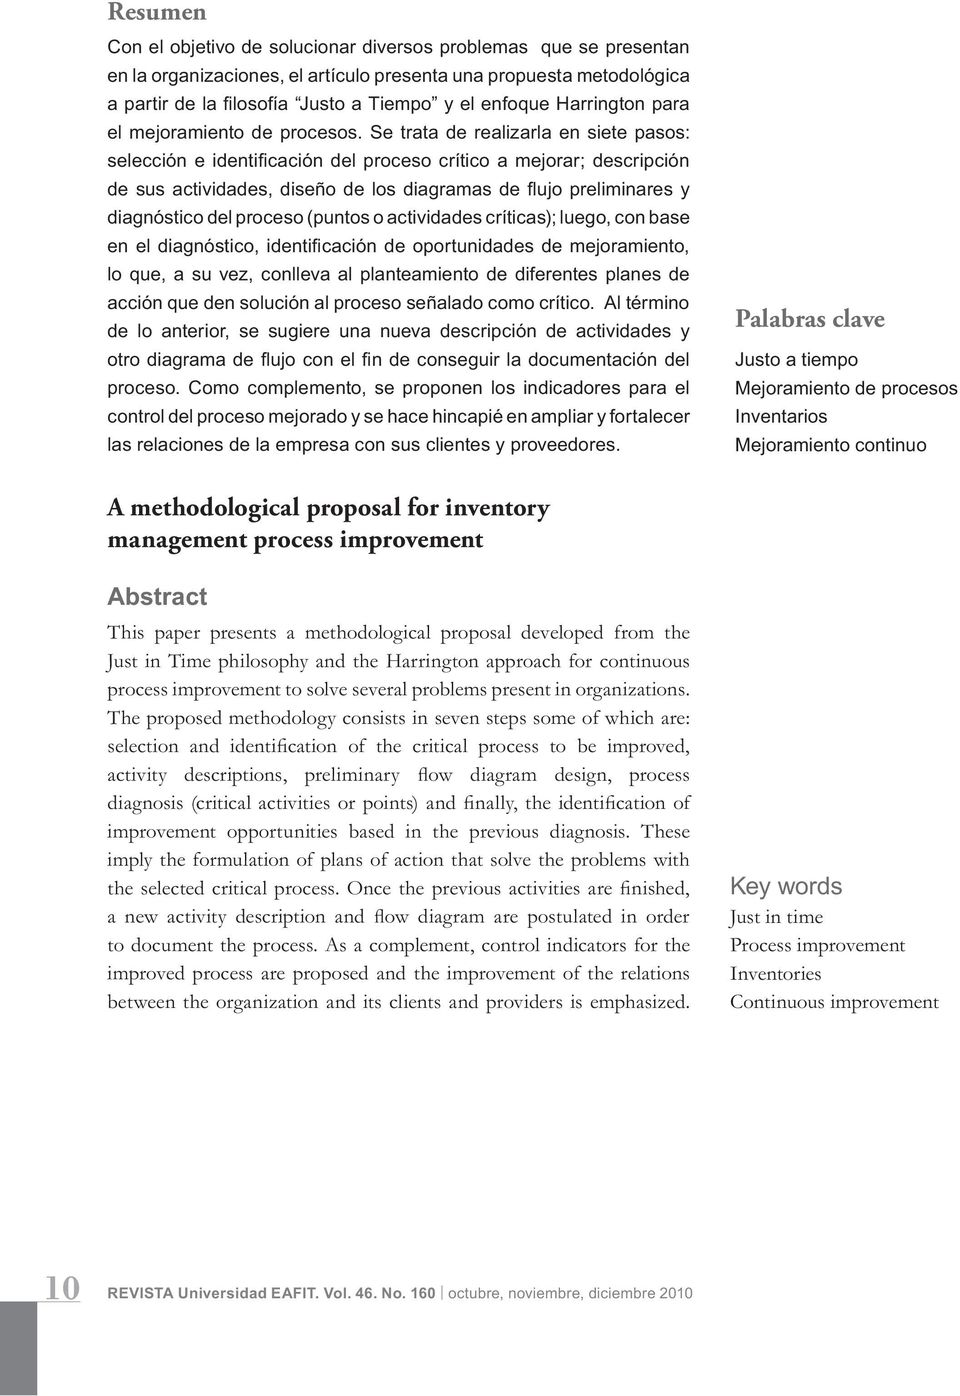 Inventarios Mejoramiento continuo A methodological proposal for inventory management process improvement This paper presents a methodological proposal developed from the Just in Time philosophy and